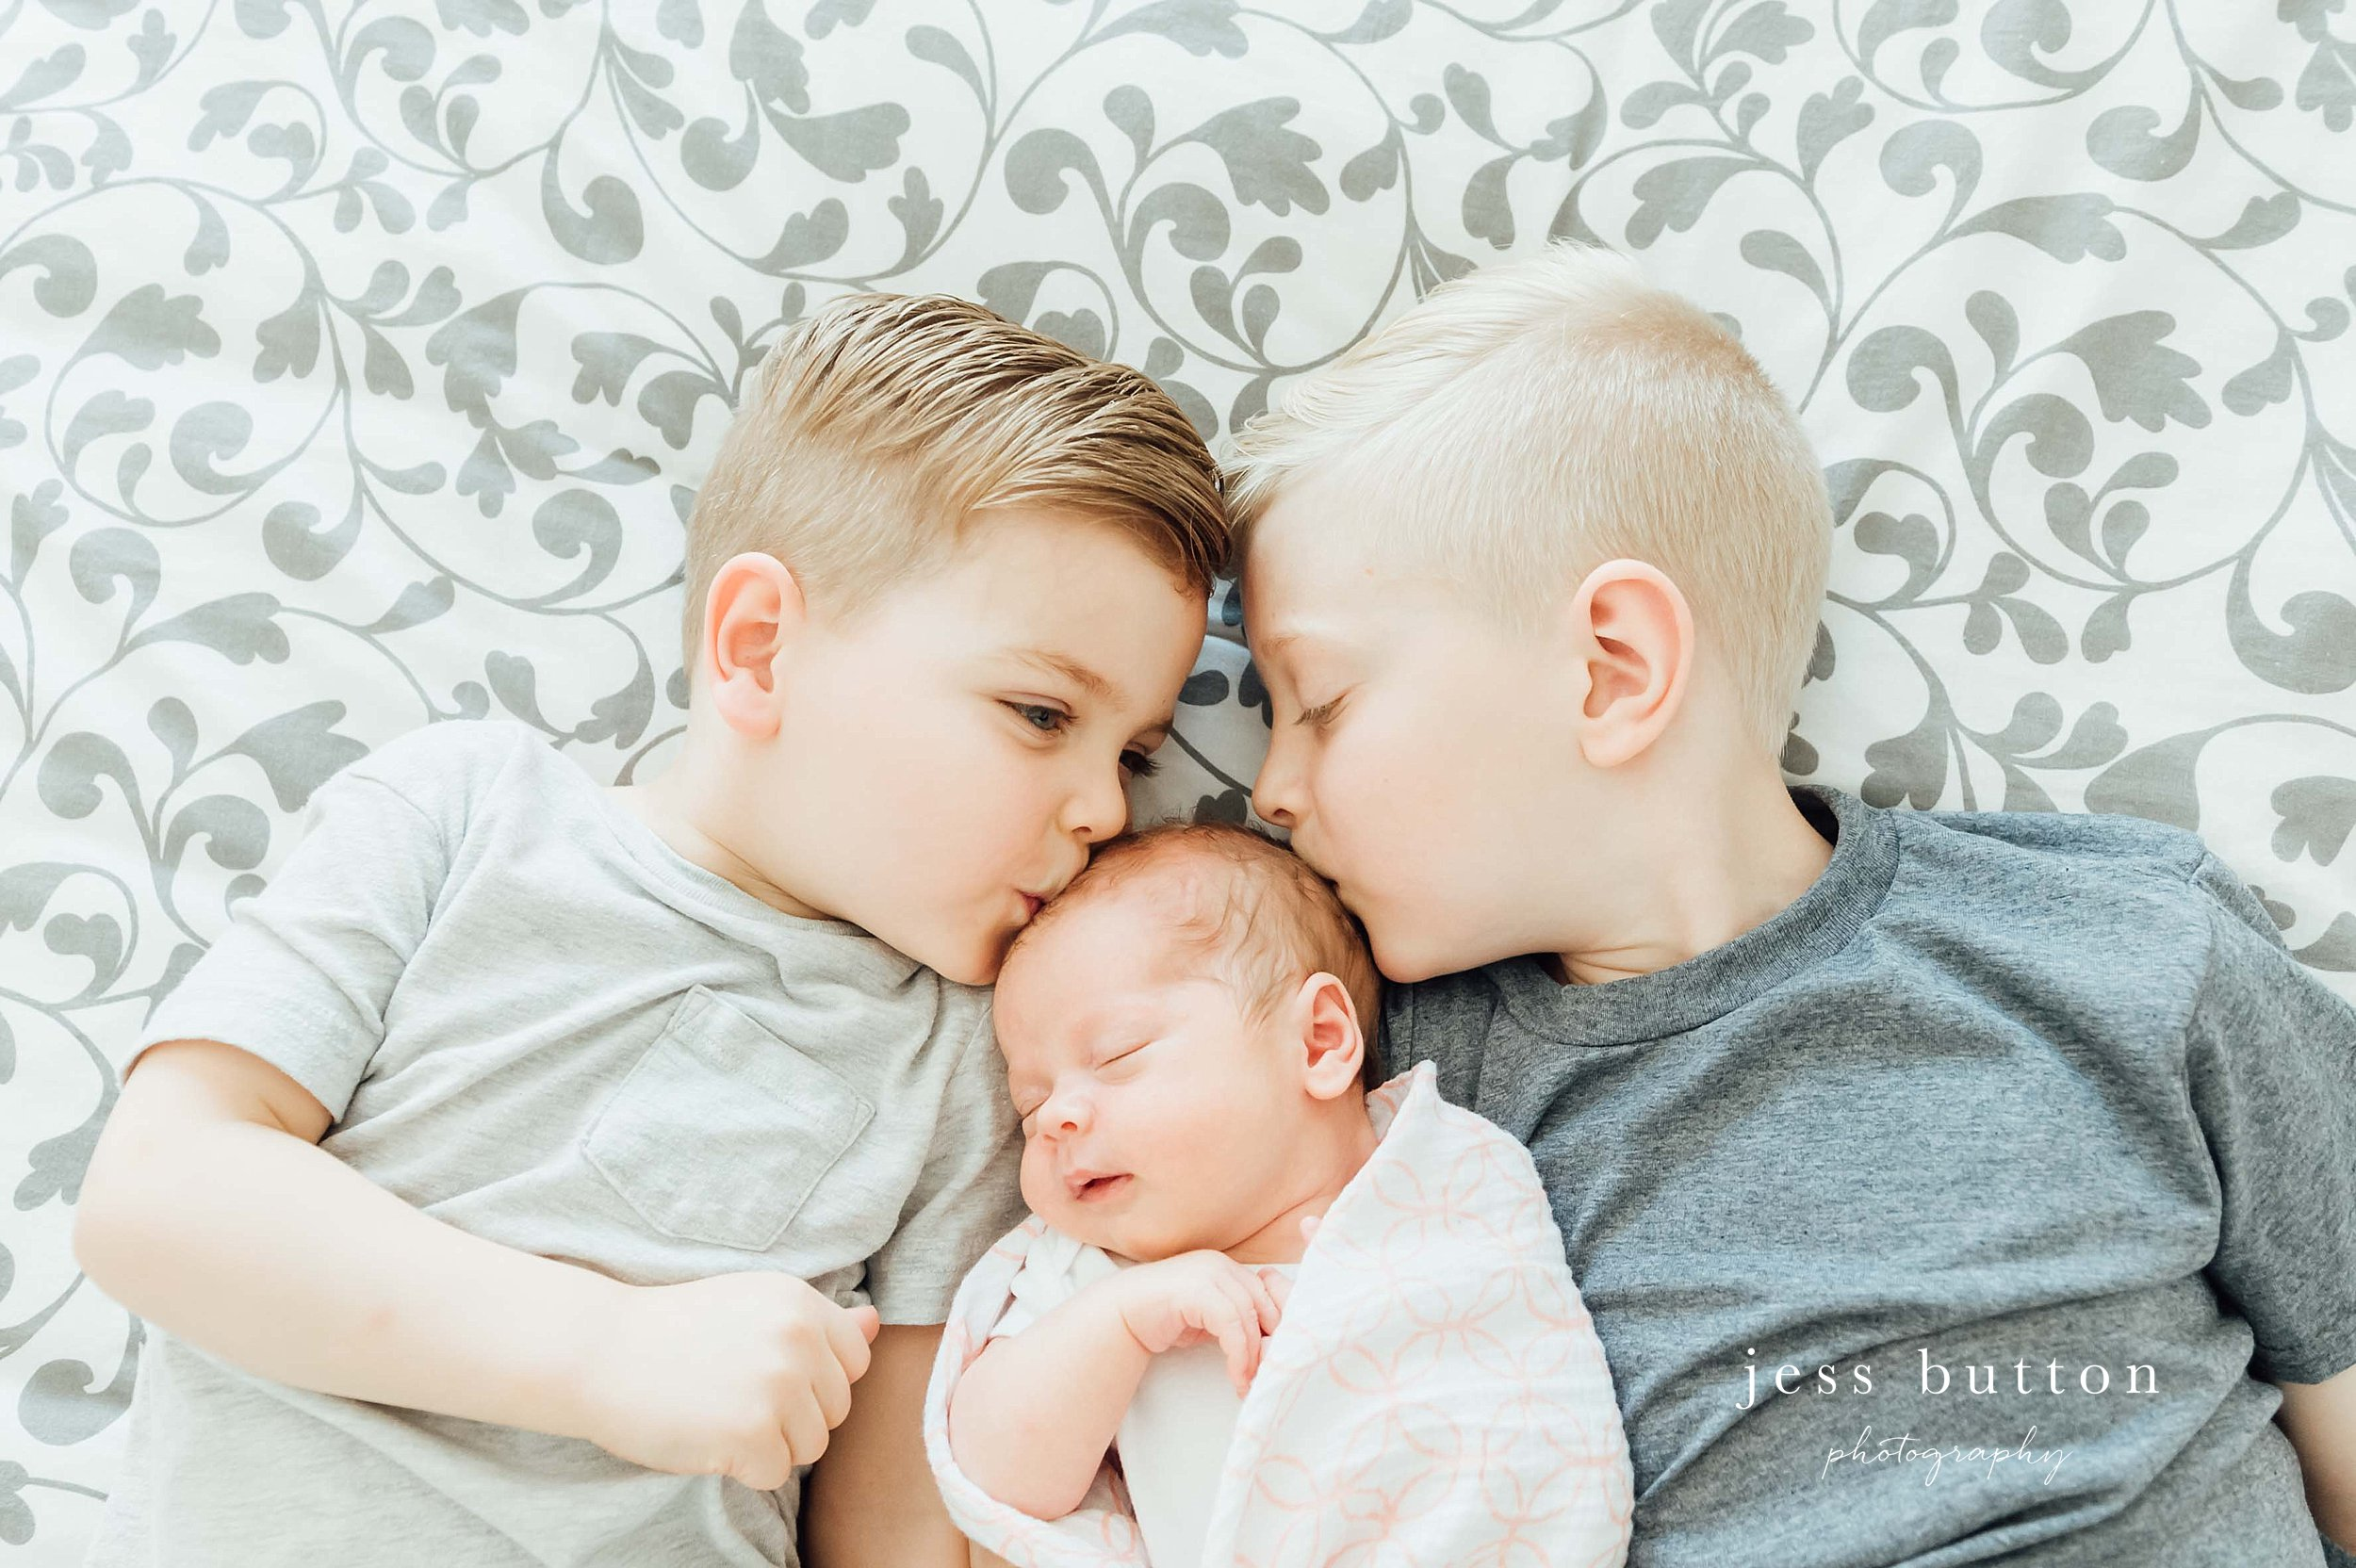 brothers and sister laying together with newborn baby girl